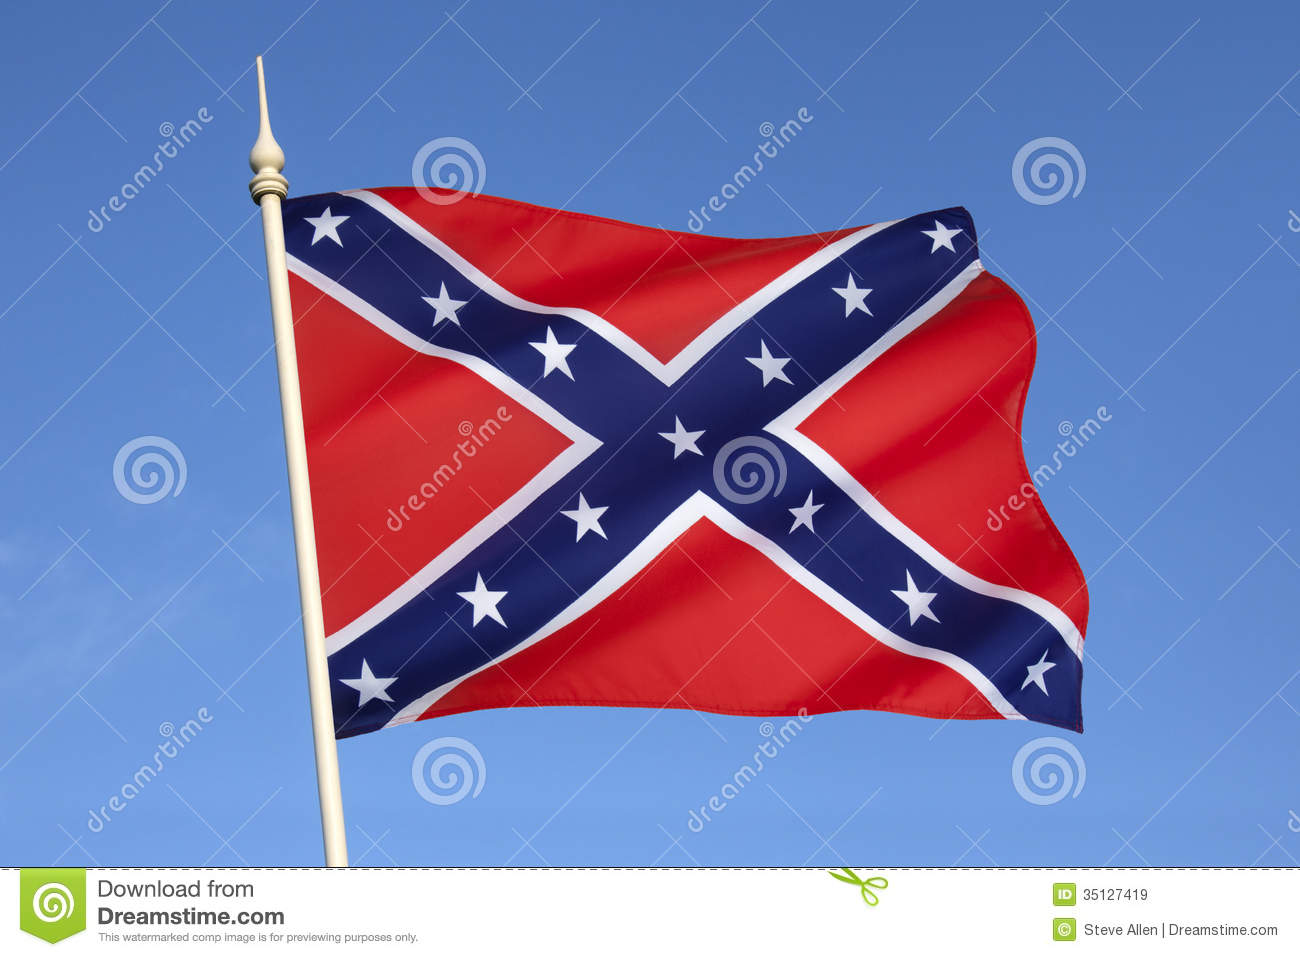 Flag Of The Confederate States Of America Royalty Free Stock.